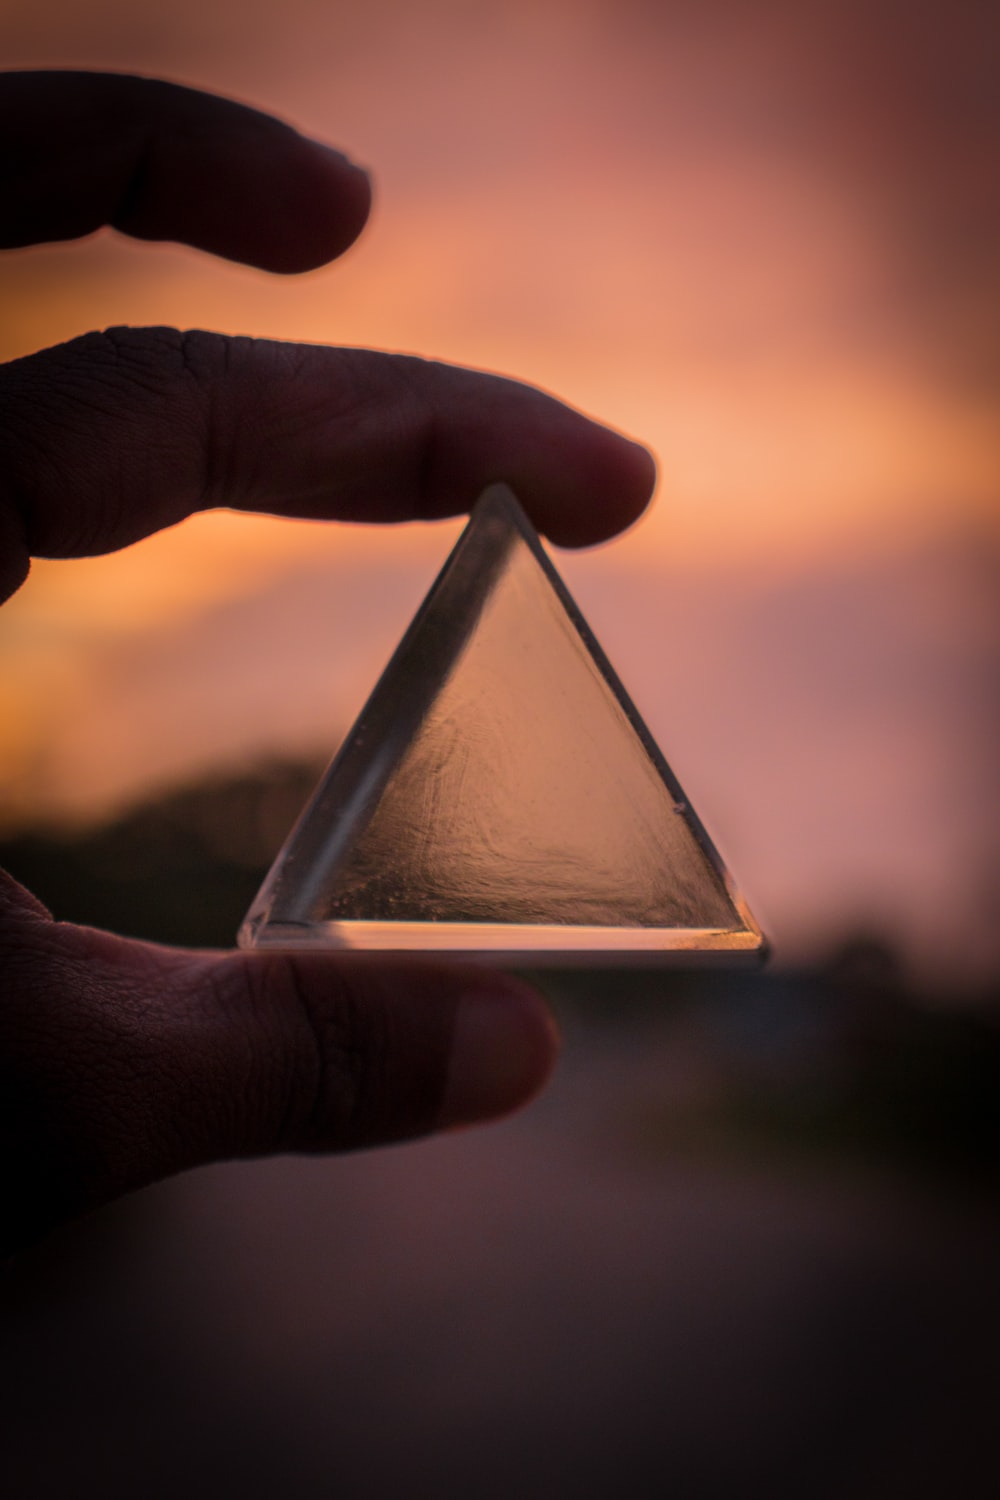 person holding triangle glass panel